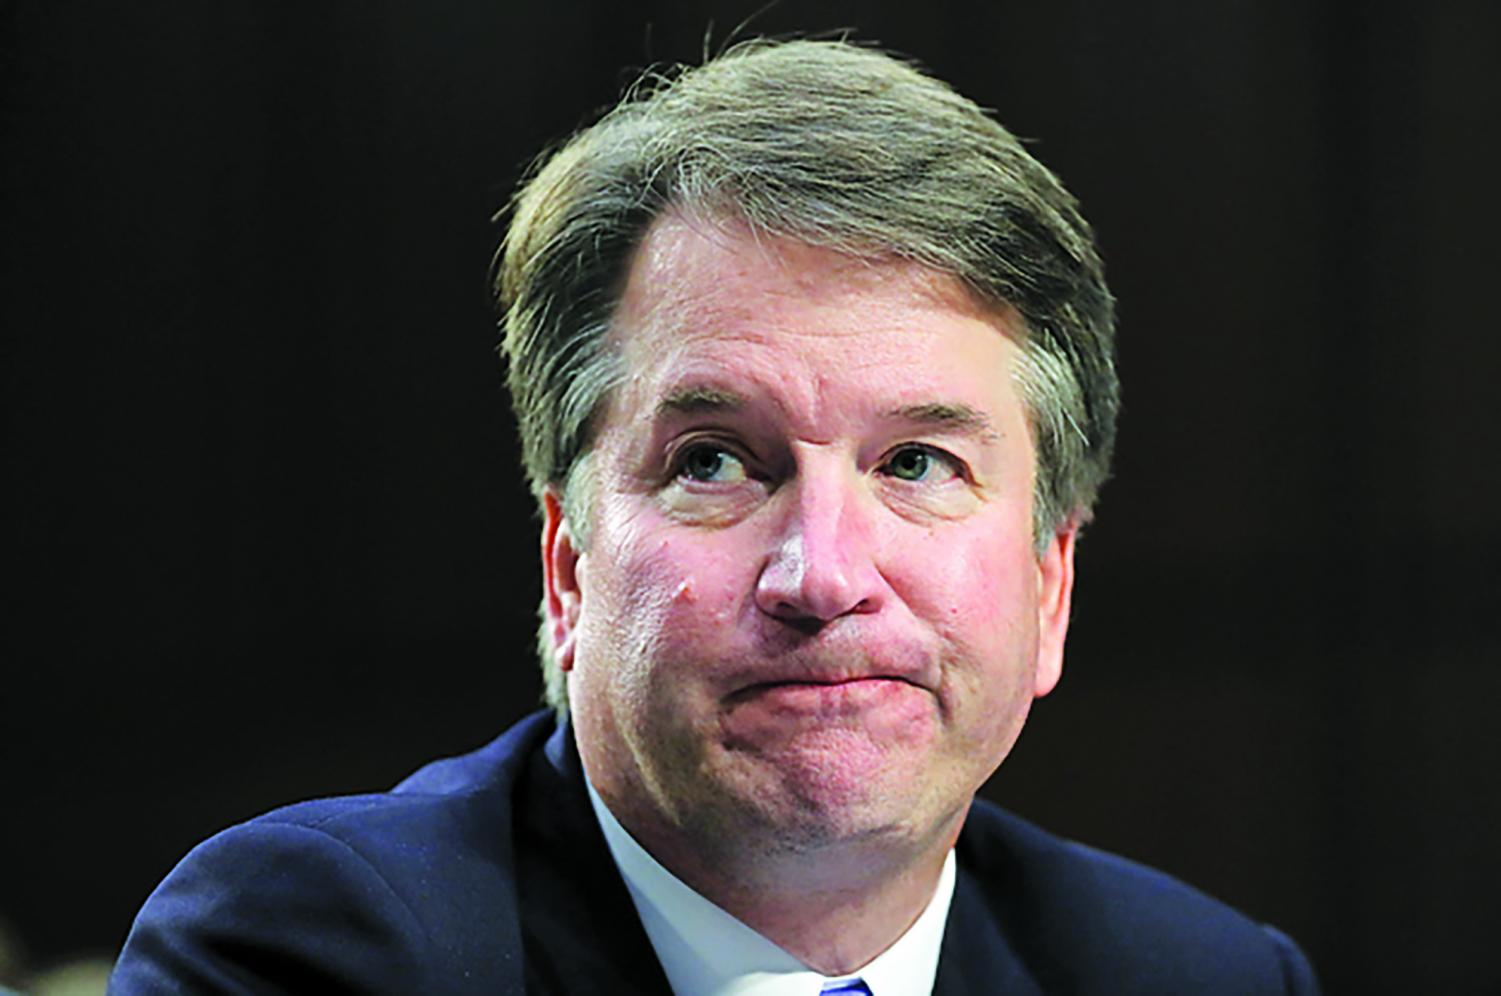 Supreme Court Nominee Kavanaugh was accused of sexual misconduct by former classmate, Ford.